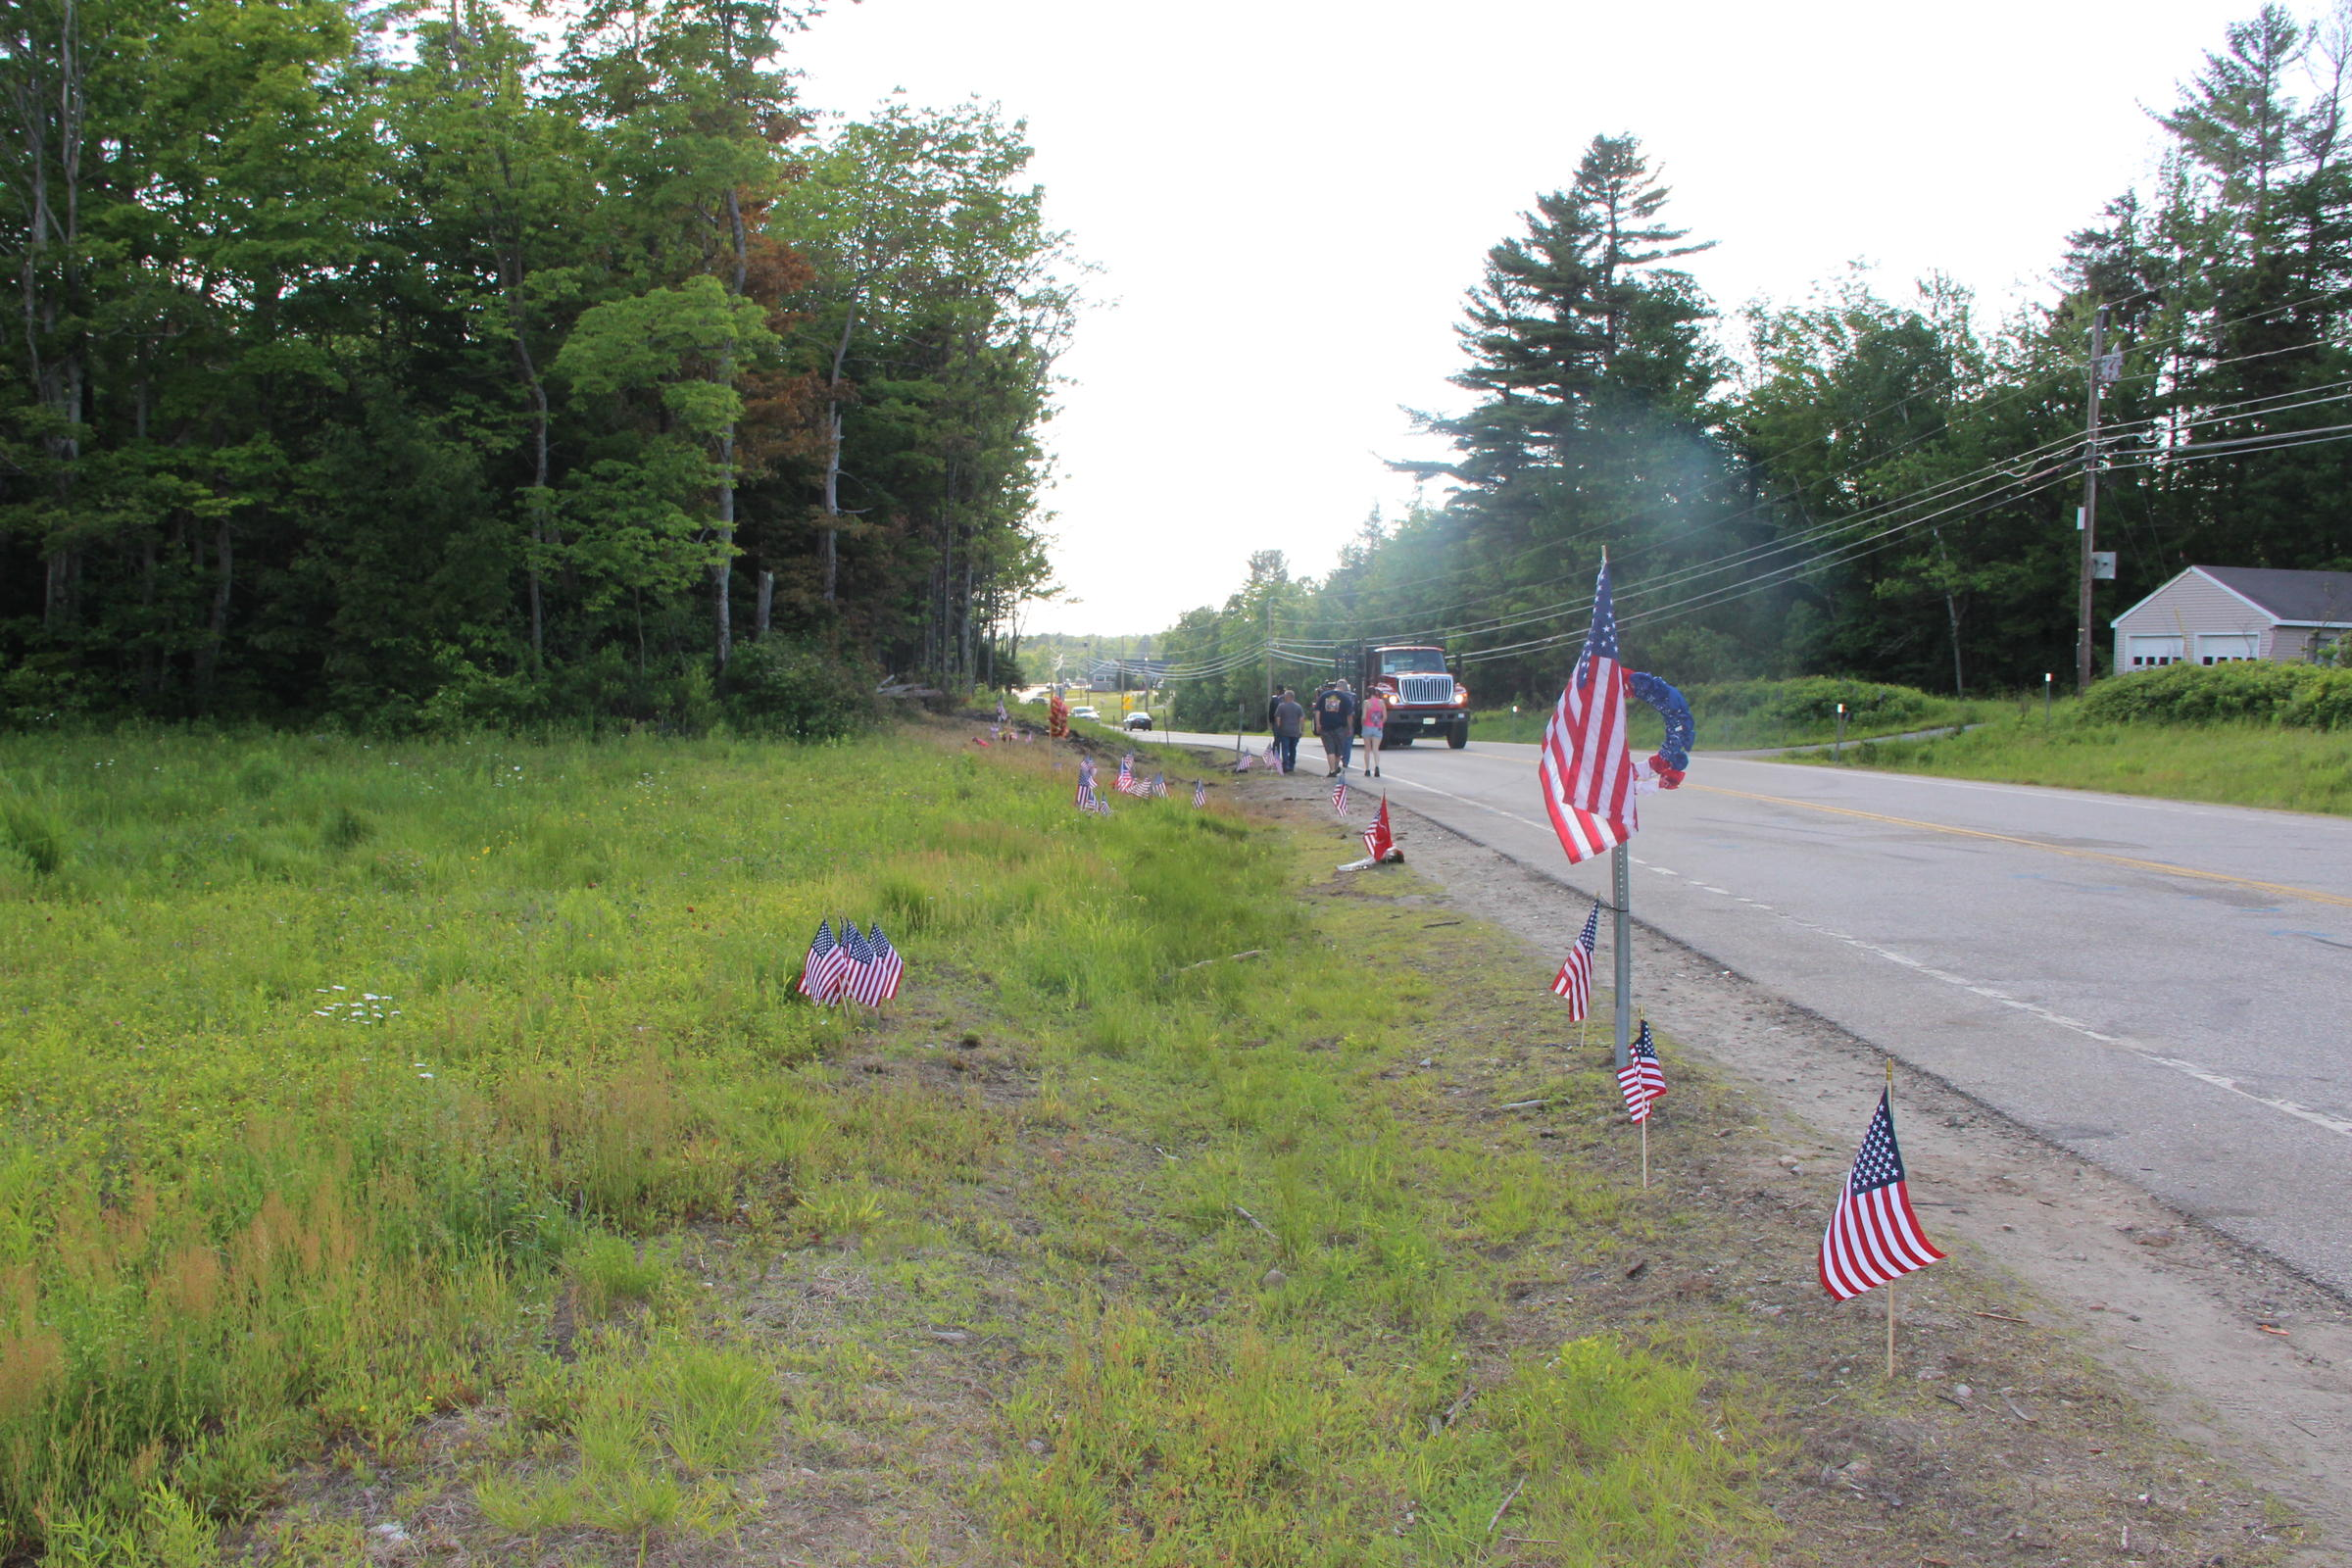 After the Crash: Route 2 Becomes Memorial in Wake of Motorcycle